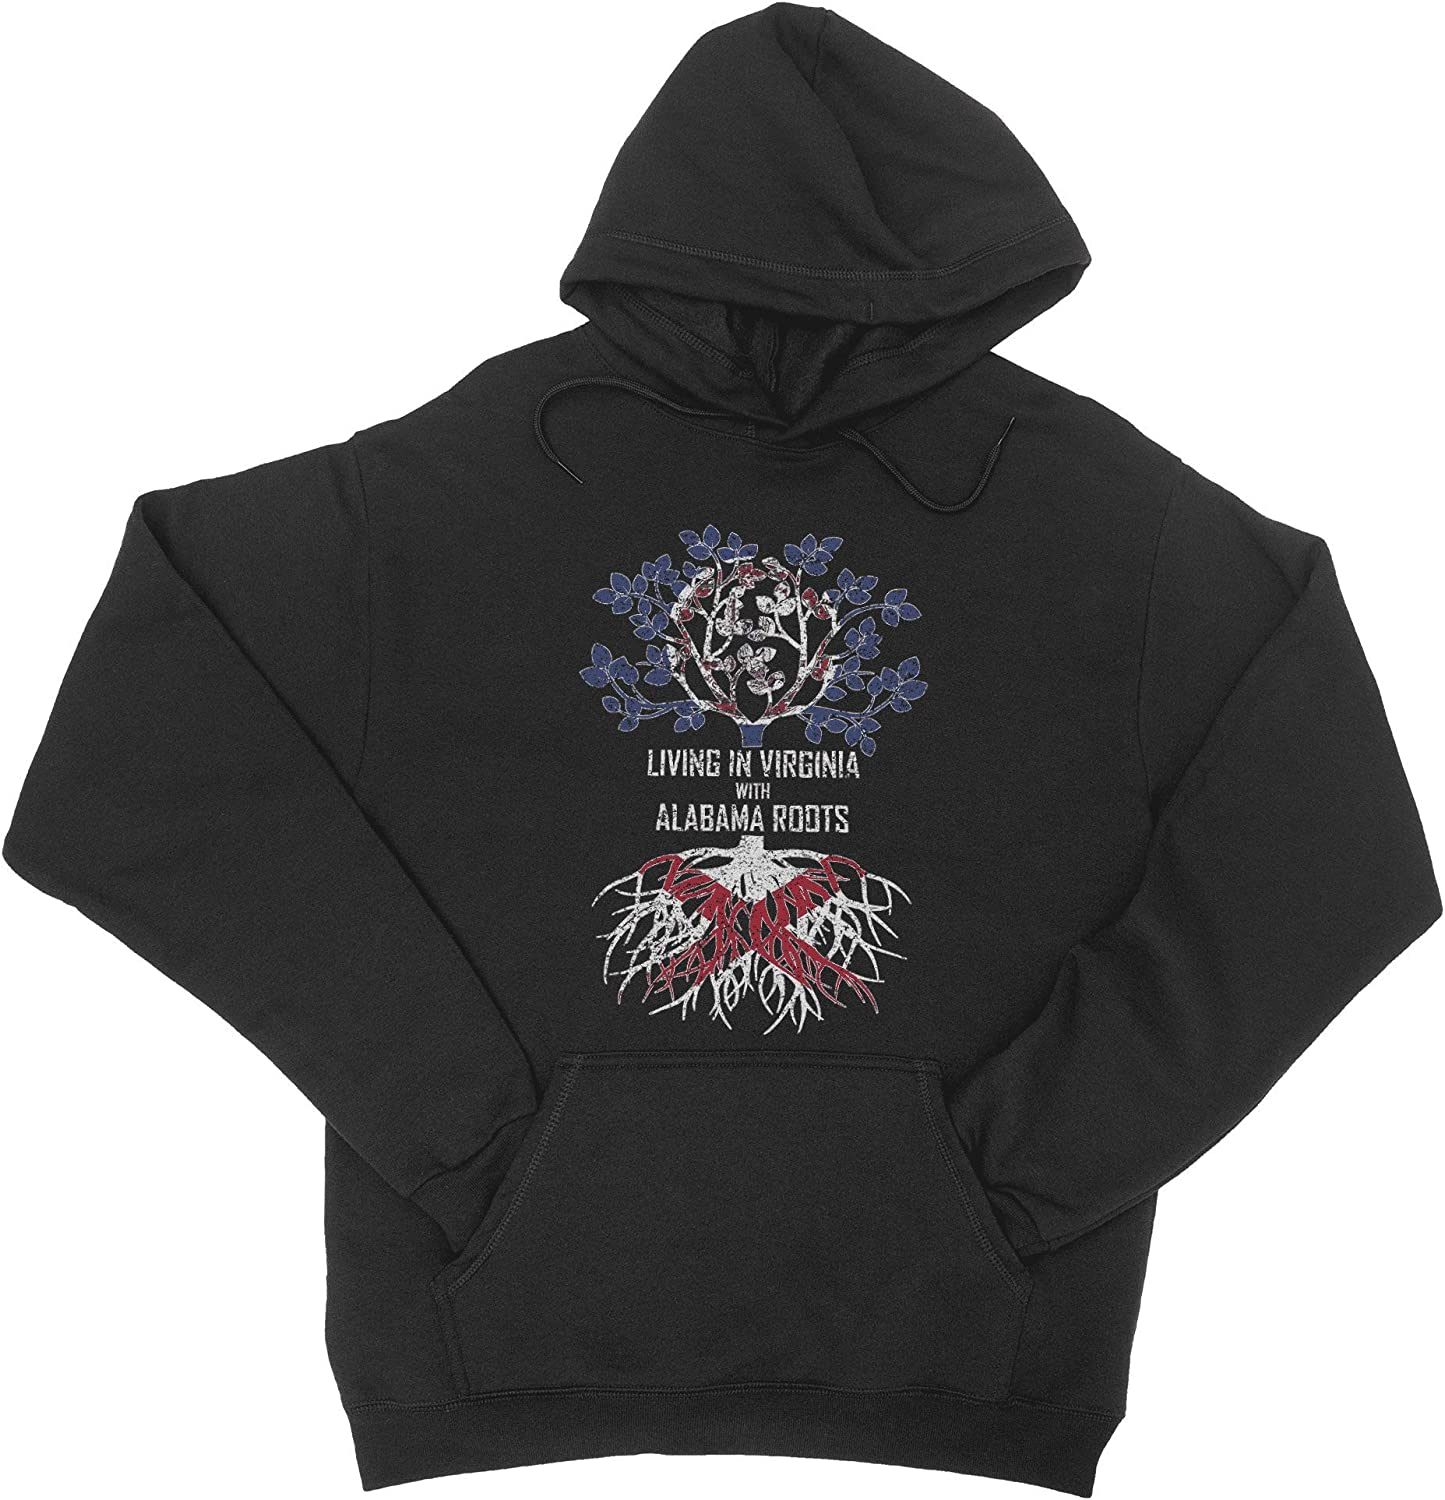 HARD EDGE New Shipping Free Shipping Max 69% OFF DESIGN Unisex Living In with Virginia Alabama Roots Sw